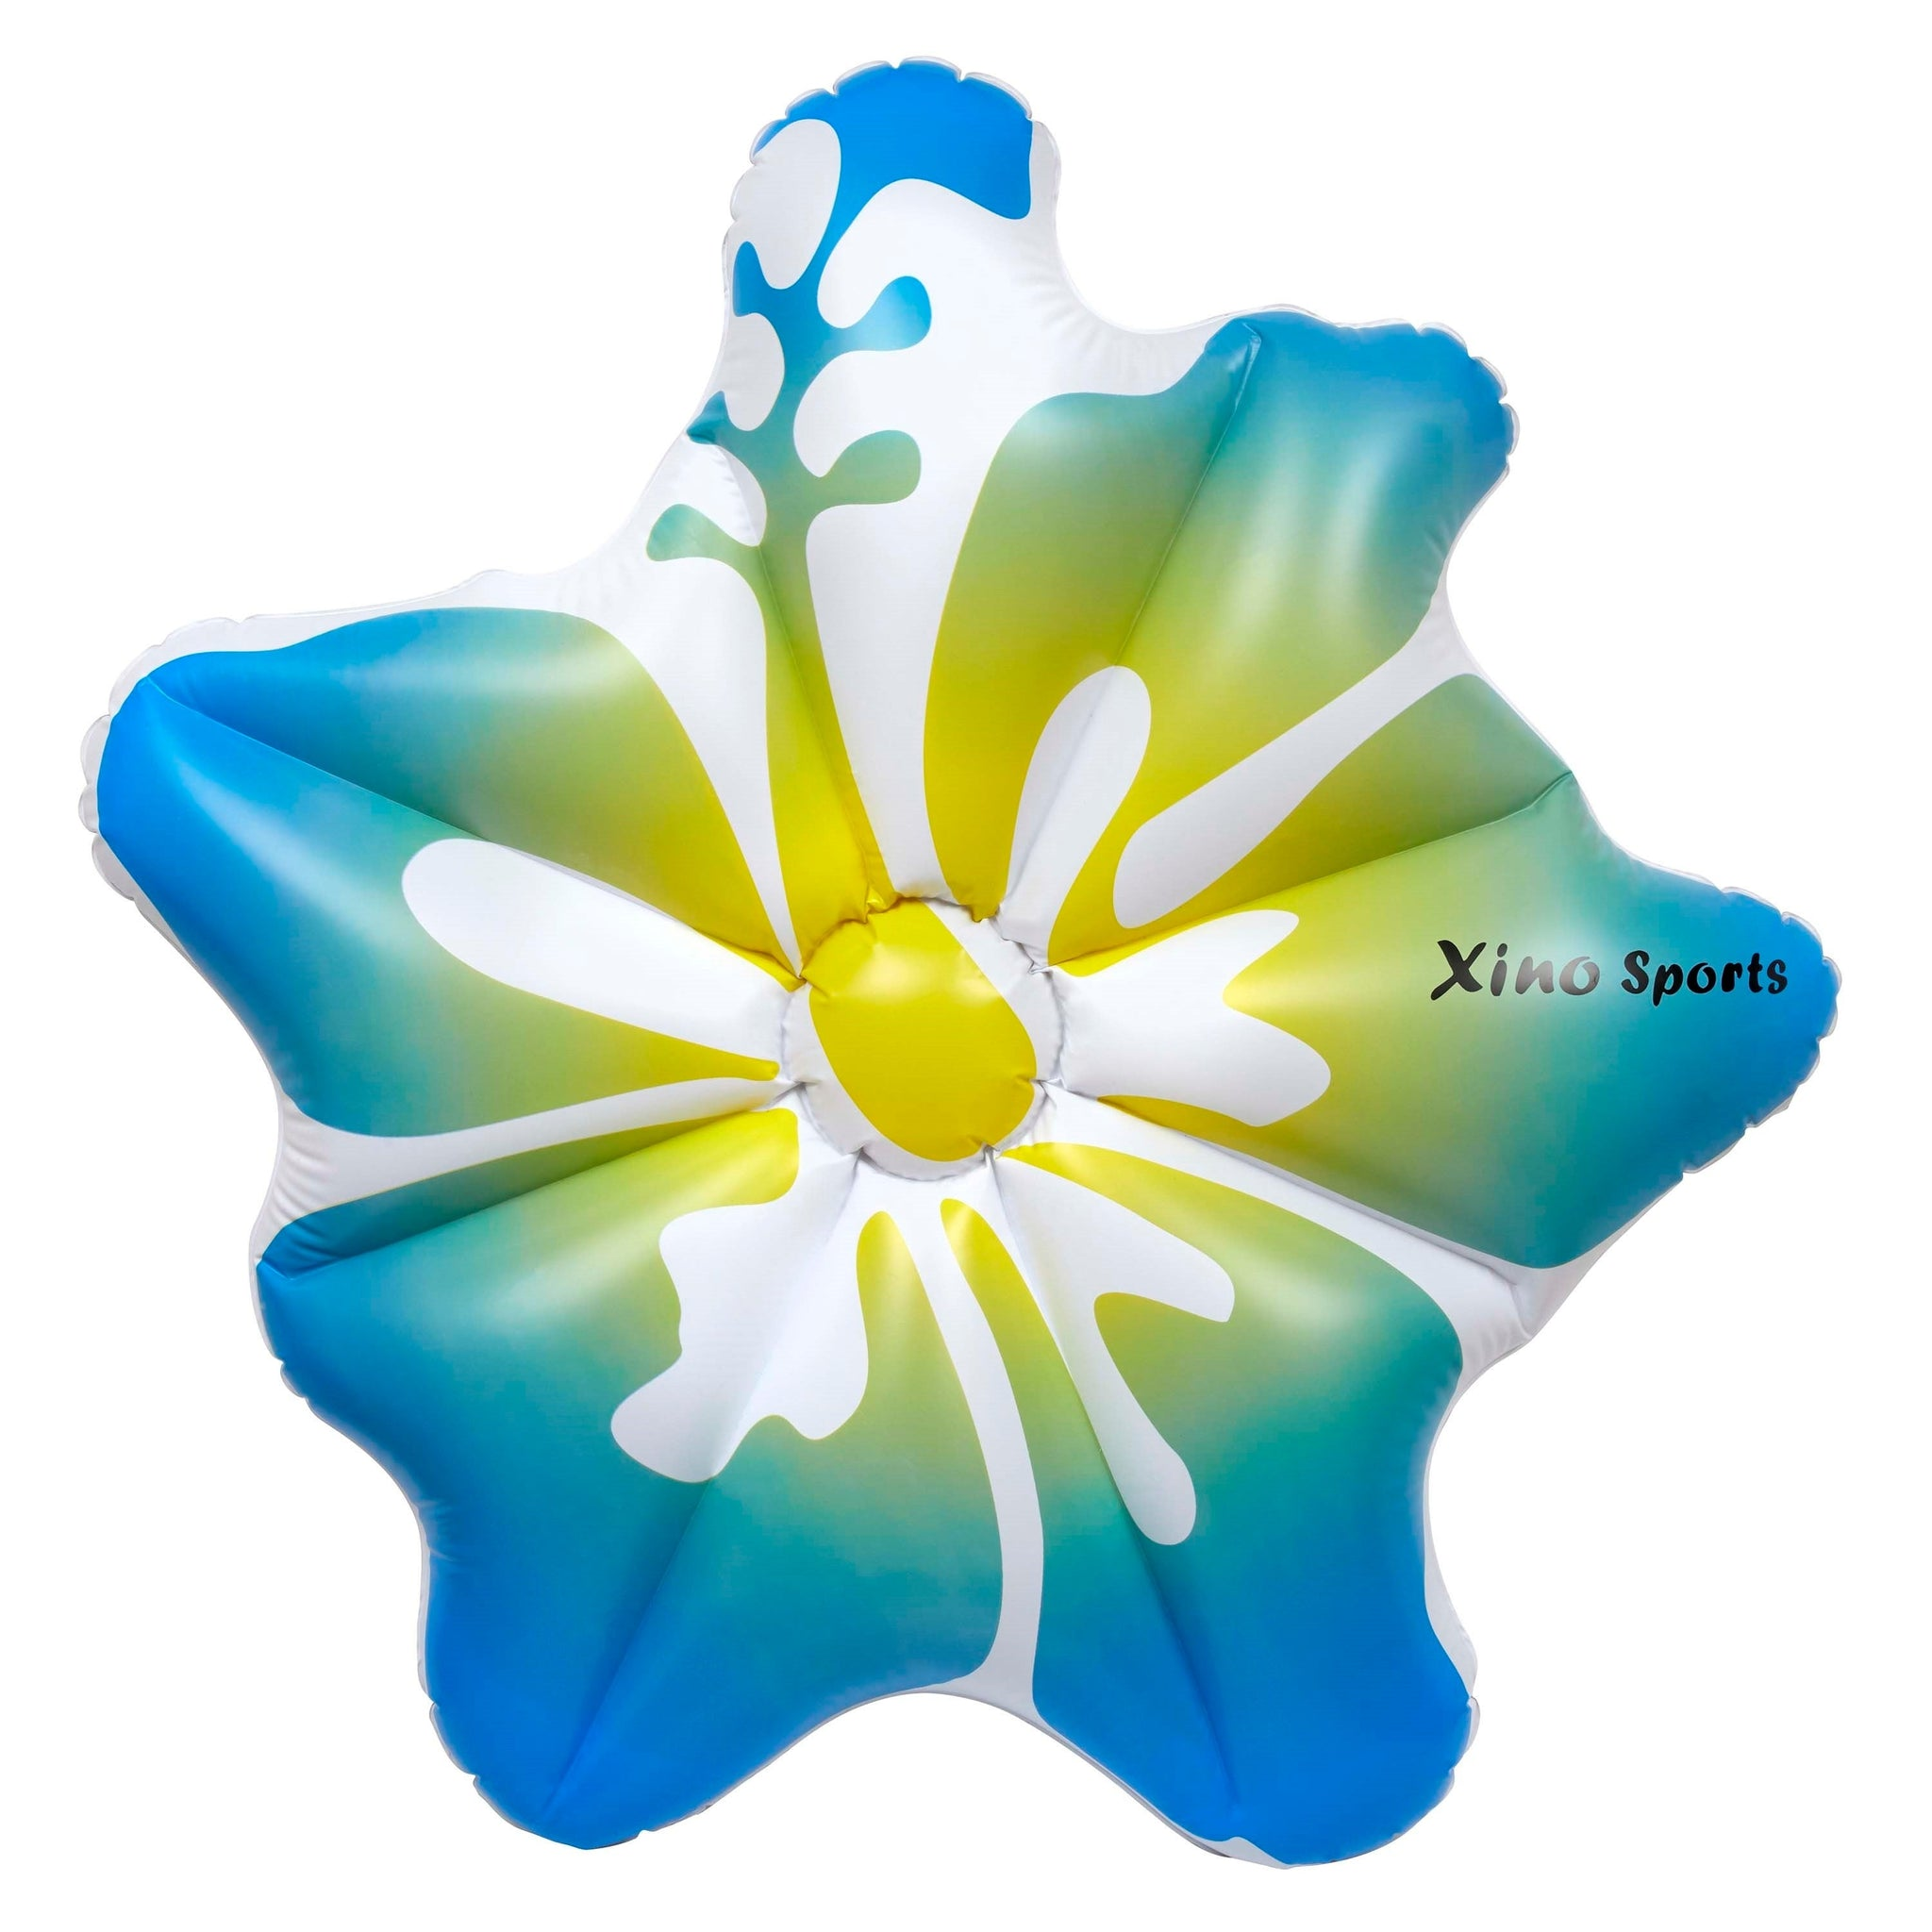 Xino Sports Deluxe Hibiscus Pool Floatie, Will Make Every Lady Look Like a Princess, Watch It Become Pool Party Favorite, Comes in Pink and Blue Color - Xino Sports